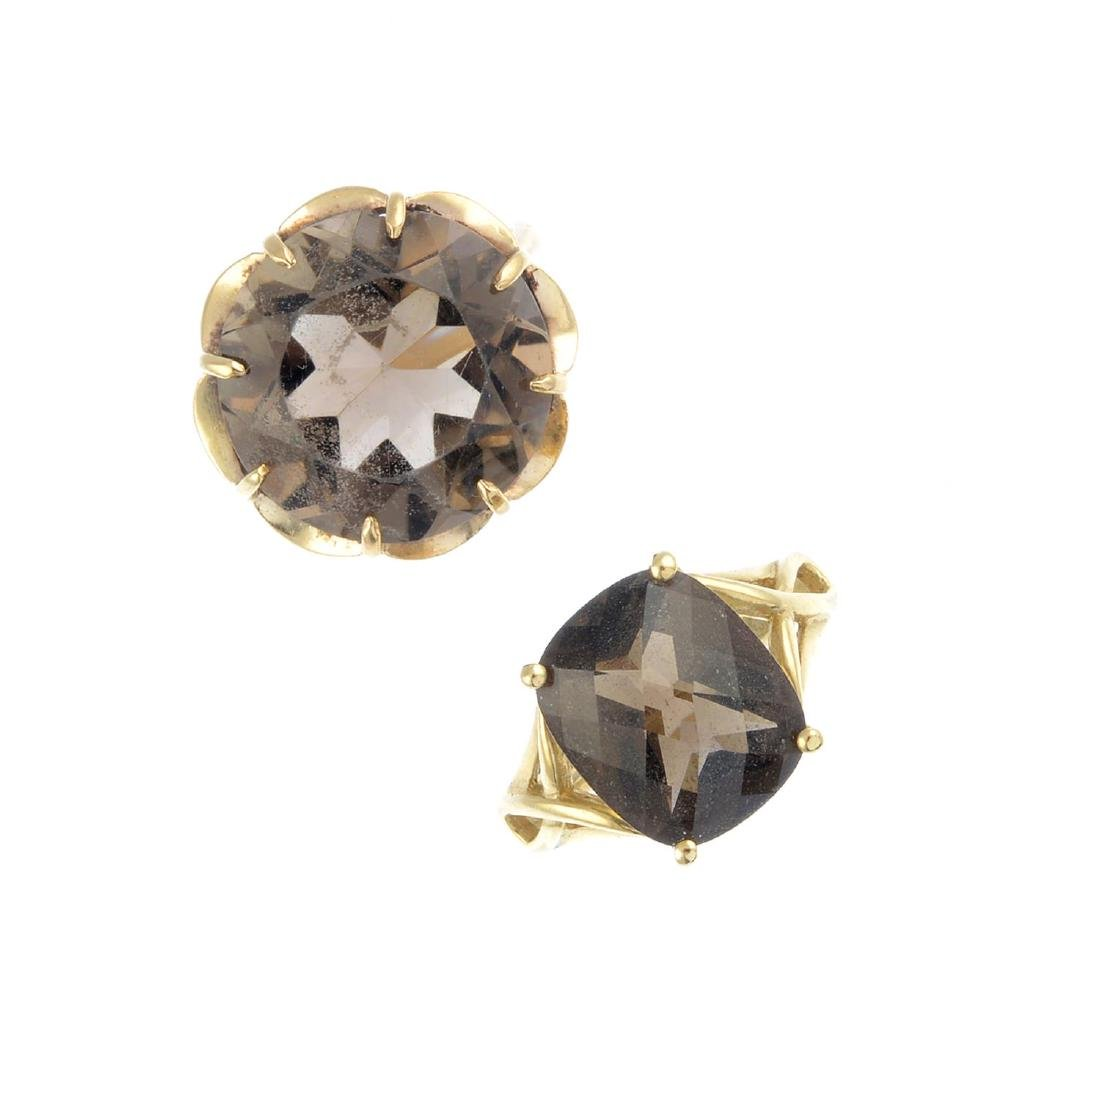 Two 9ct gold smoky quartz rings. The first designed as